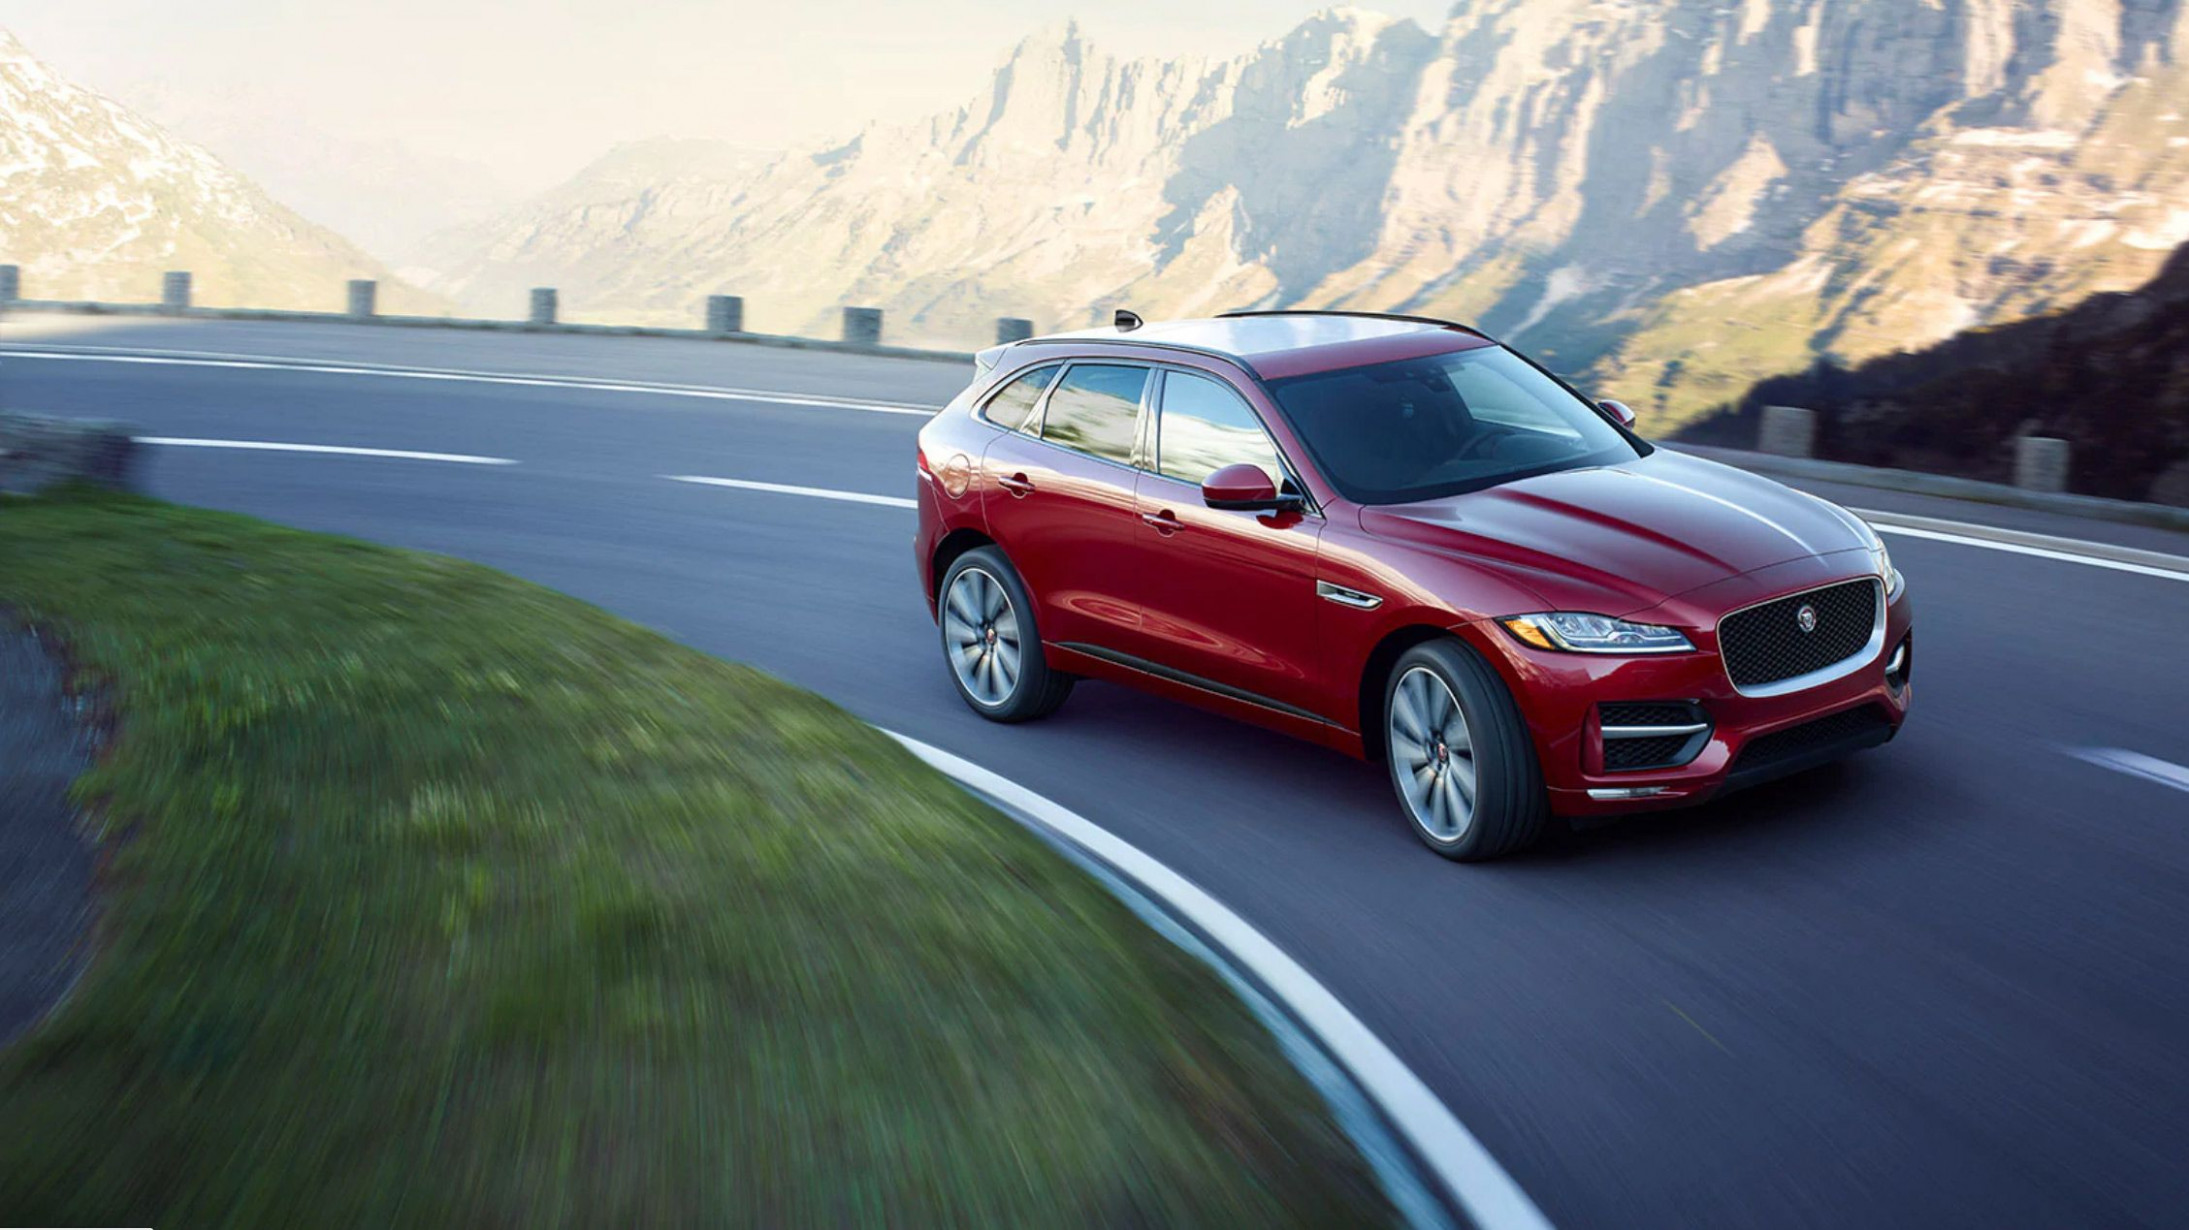 11 Jaguar F-Pace Review, Pricing, and Specs - jaguar jeep 2020